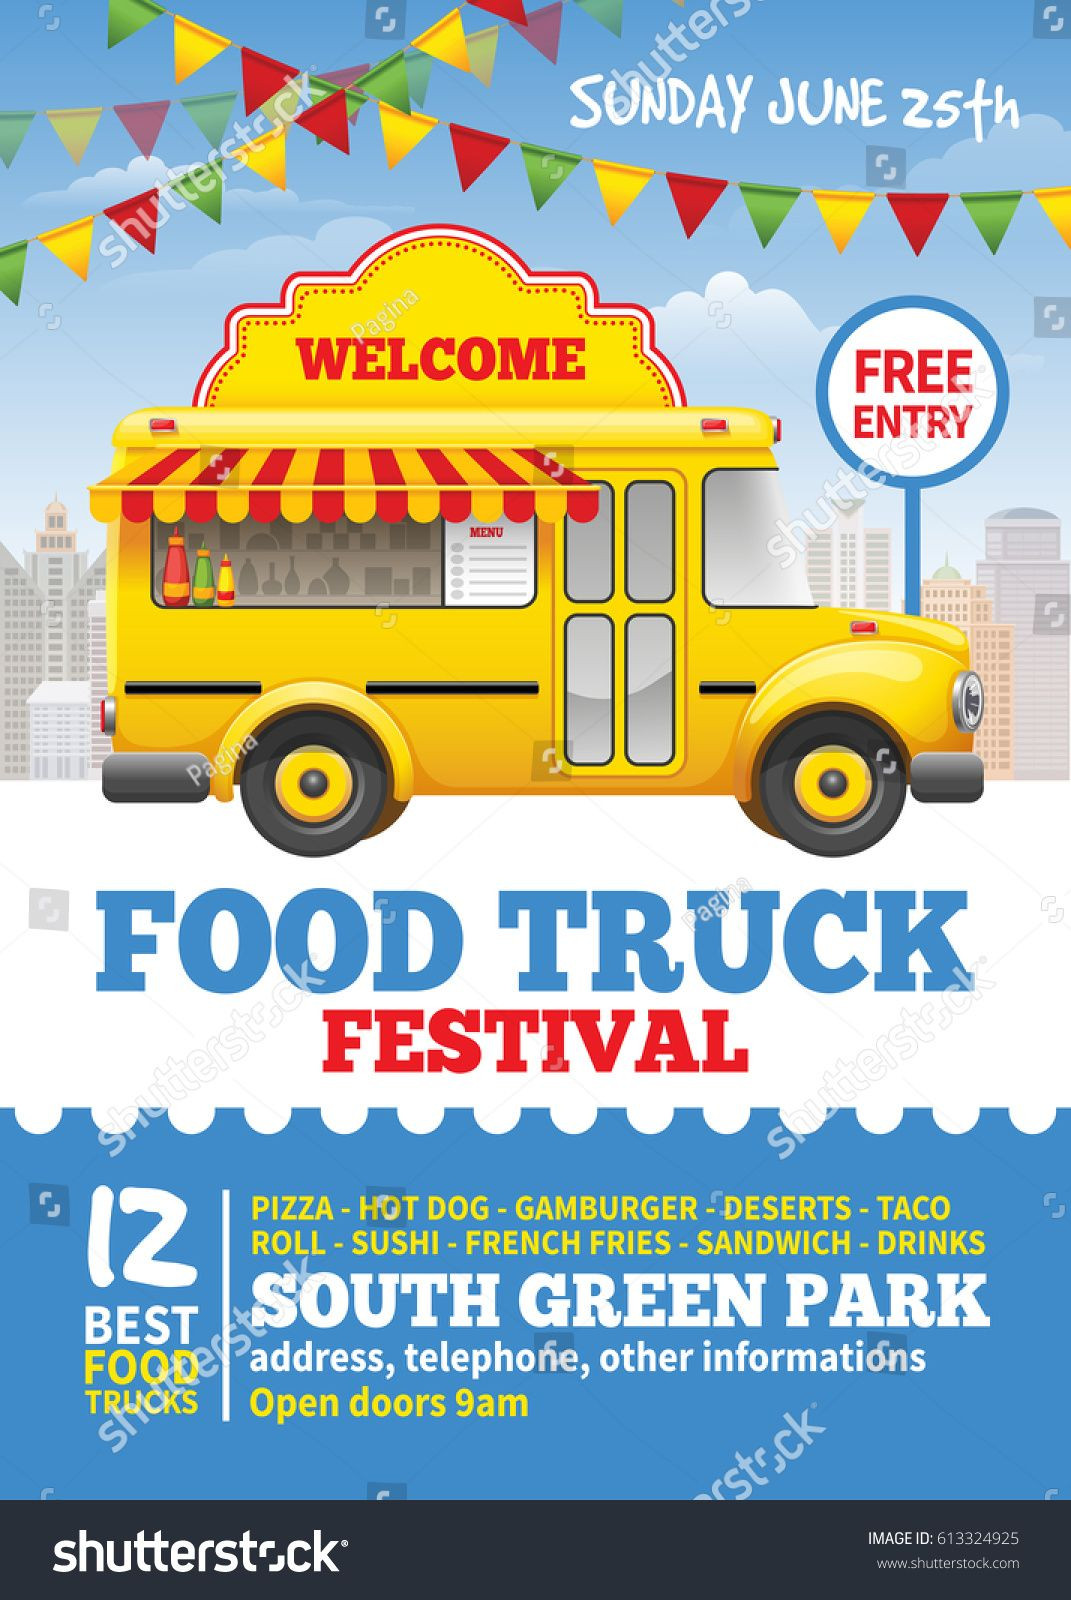 Food truck festival poster design template Cute vintage